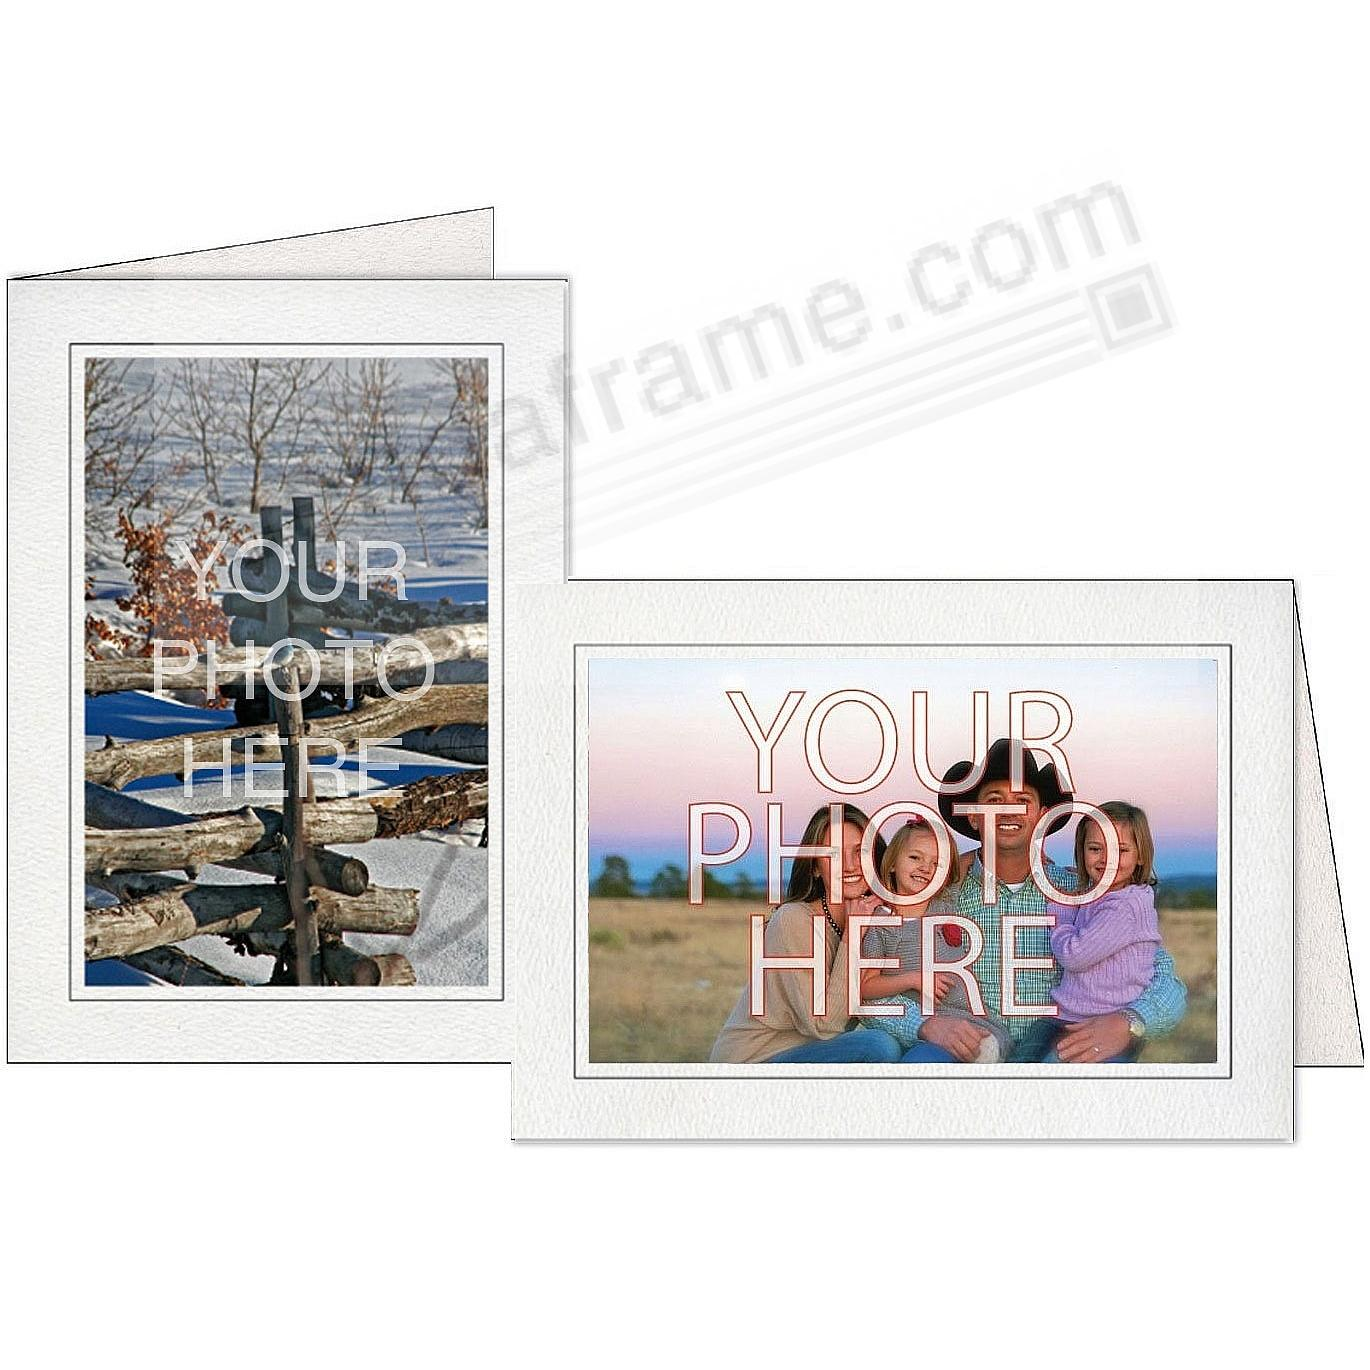 Gray w/Black Trim Border Photo Insert Card (sold in 10s)